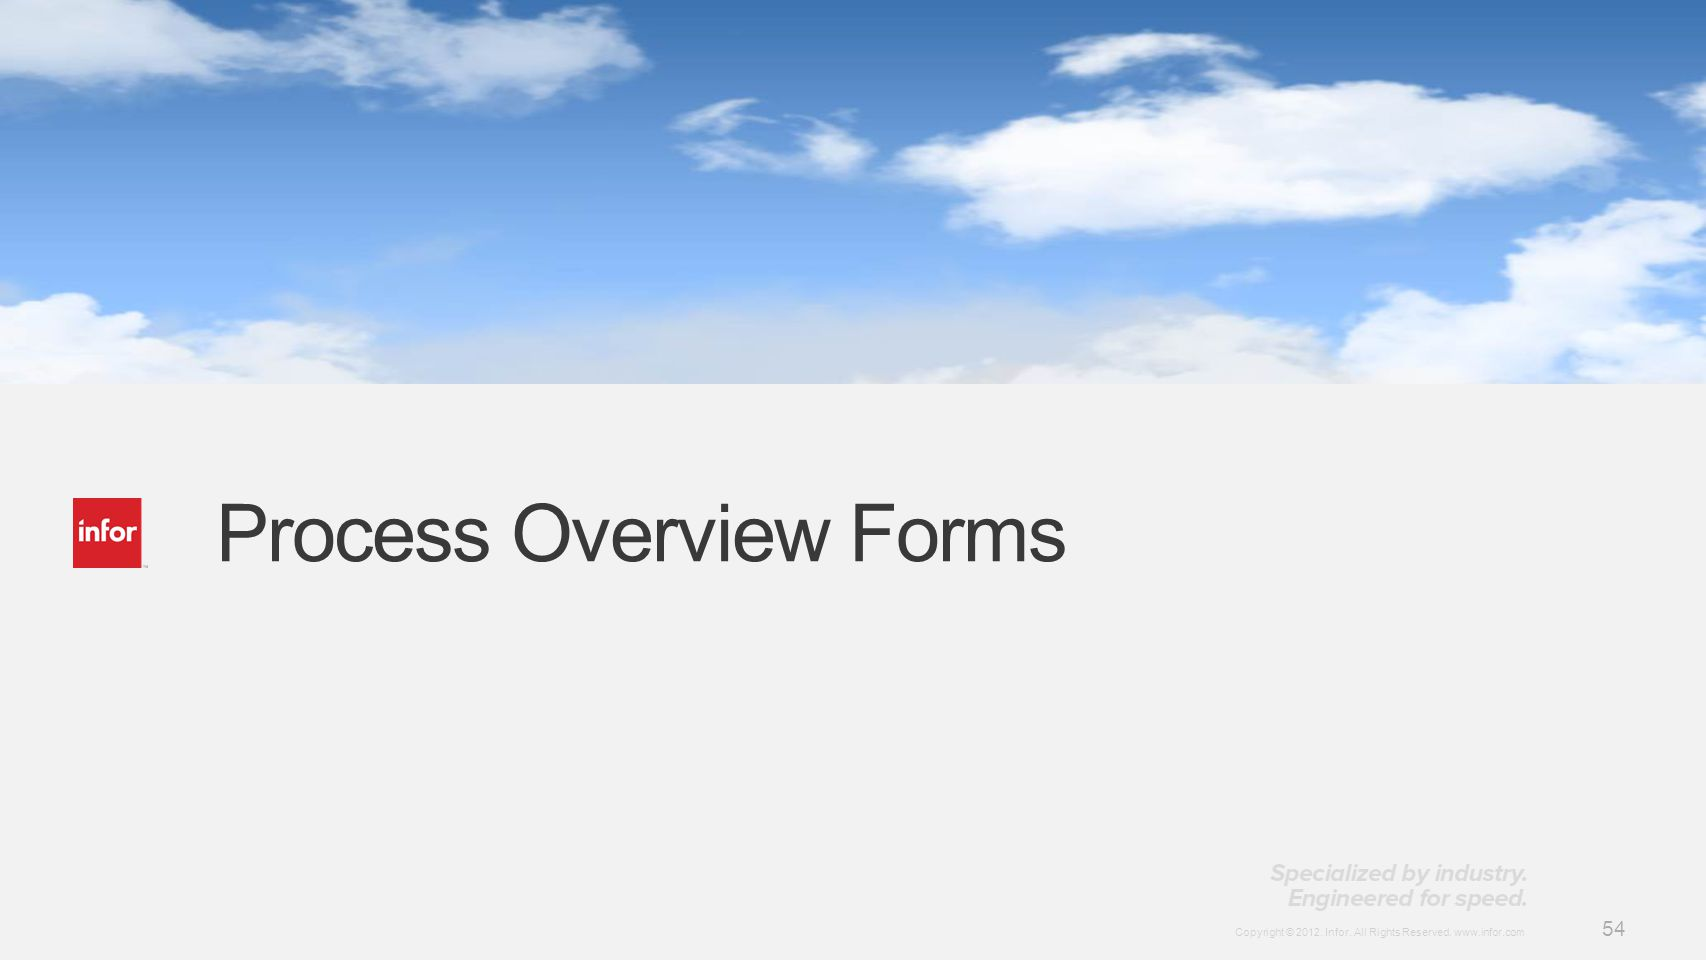 Process Overview Forms